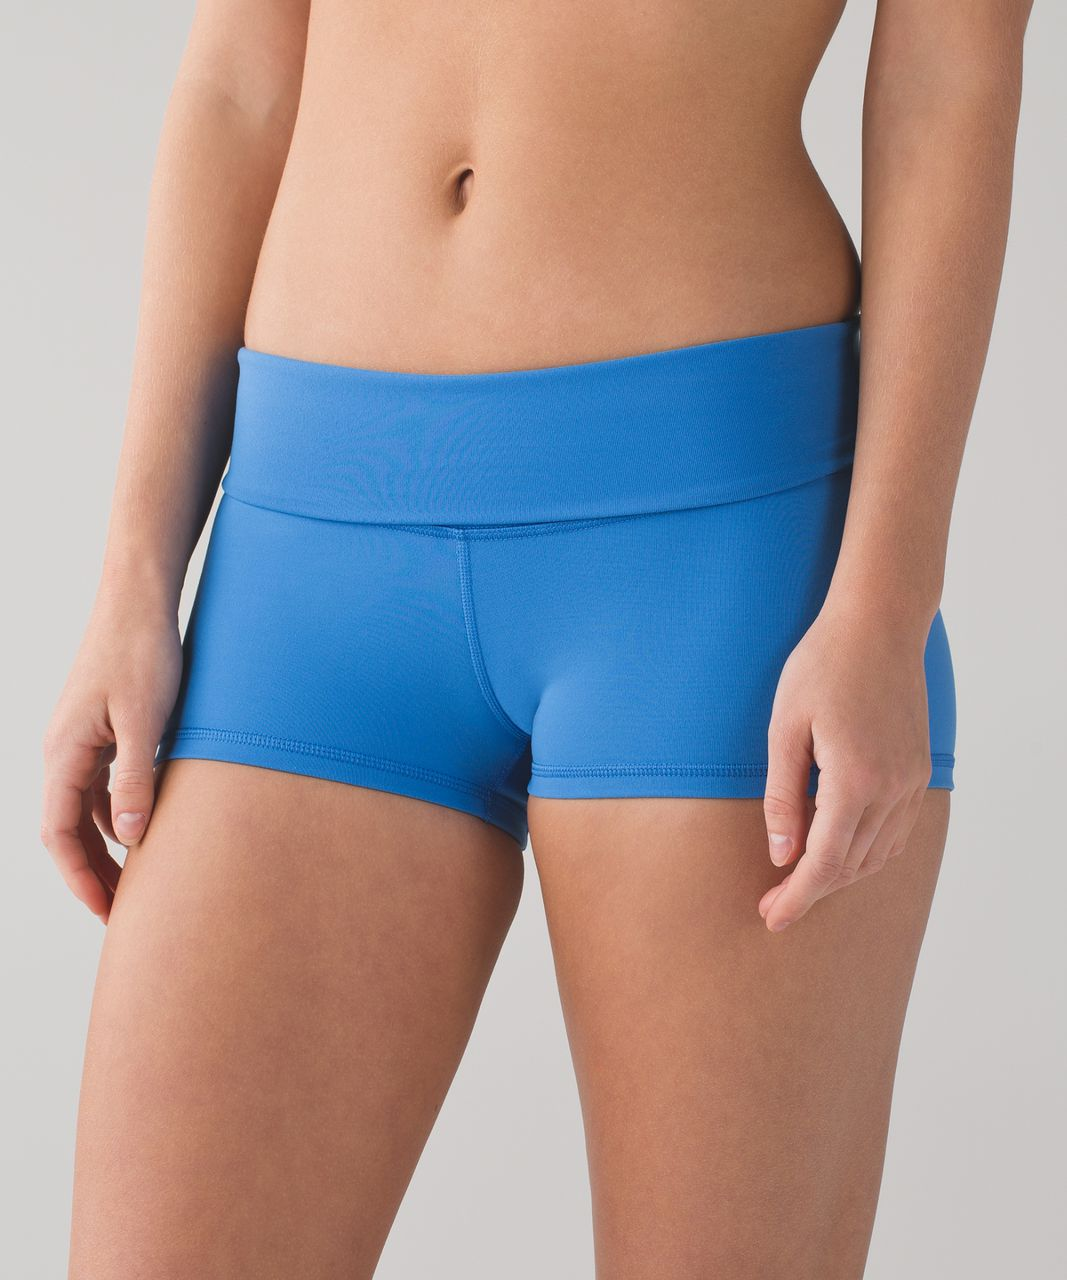 Lululemon Boogie Short (Roll Down) *Full-On Luon - Porcelaine